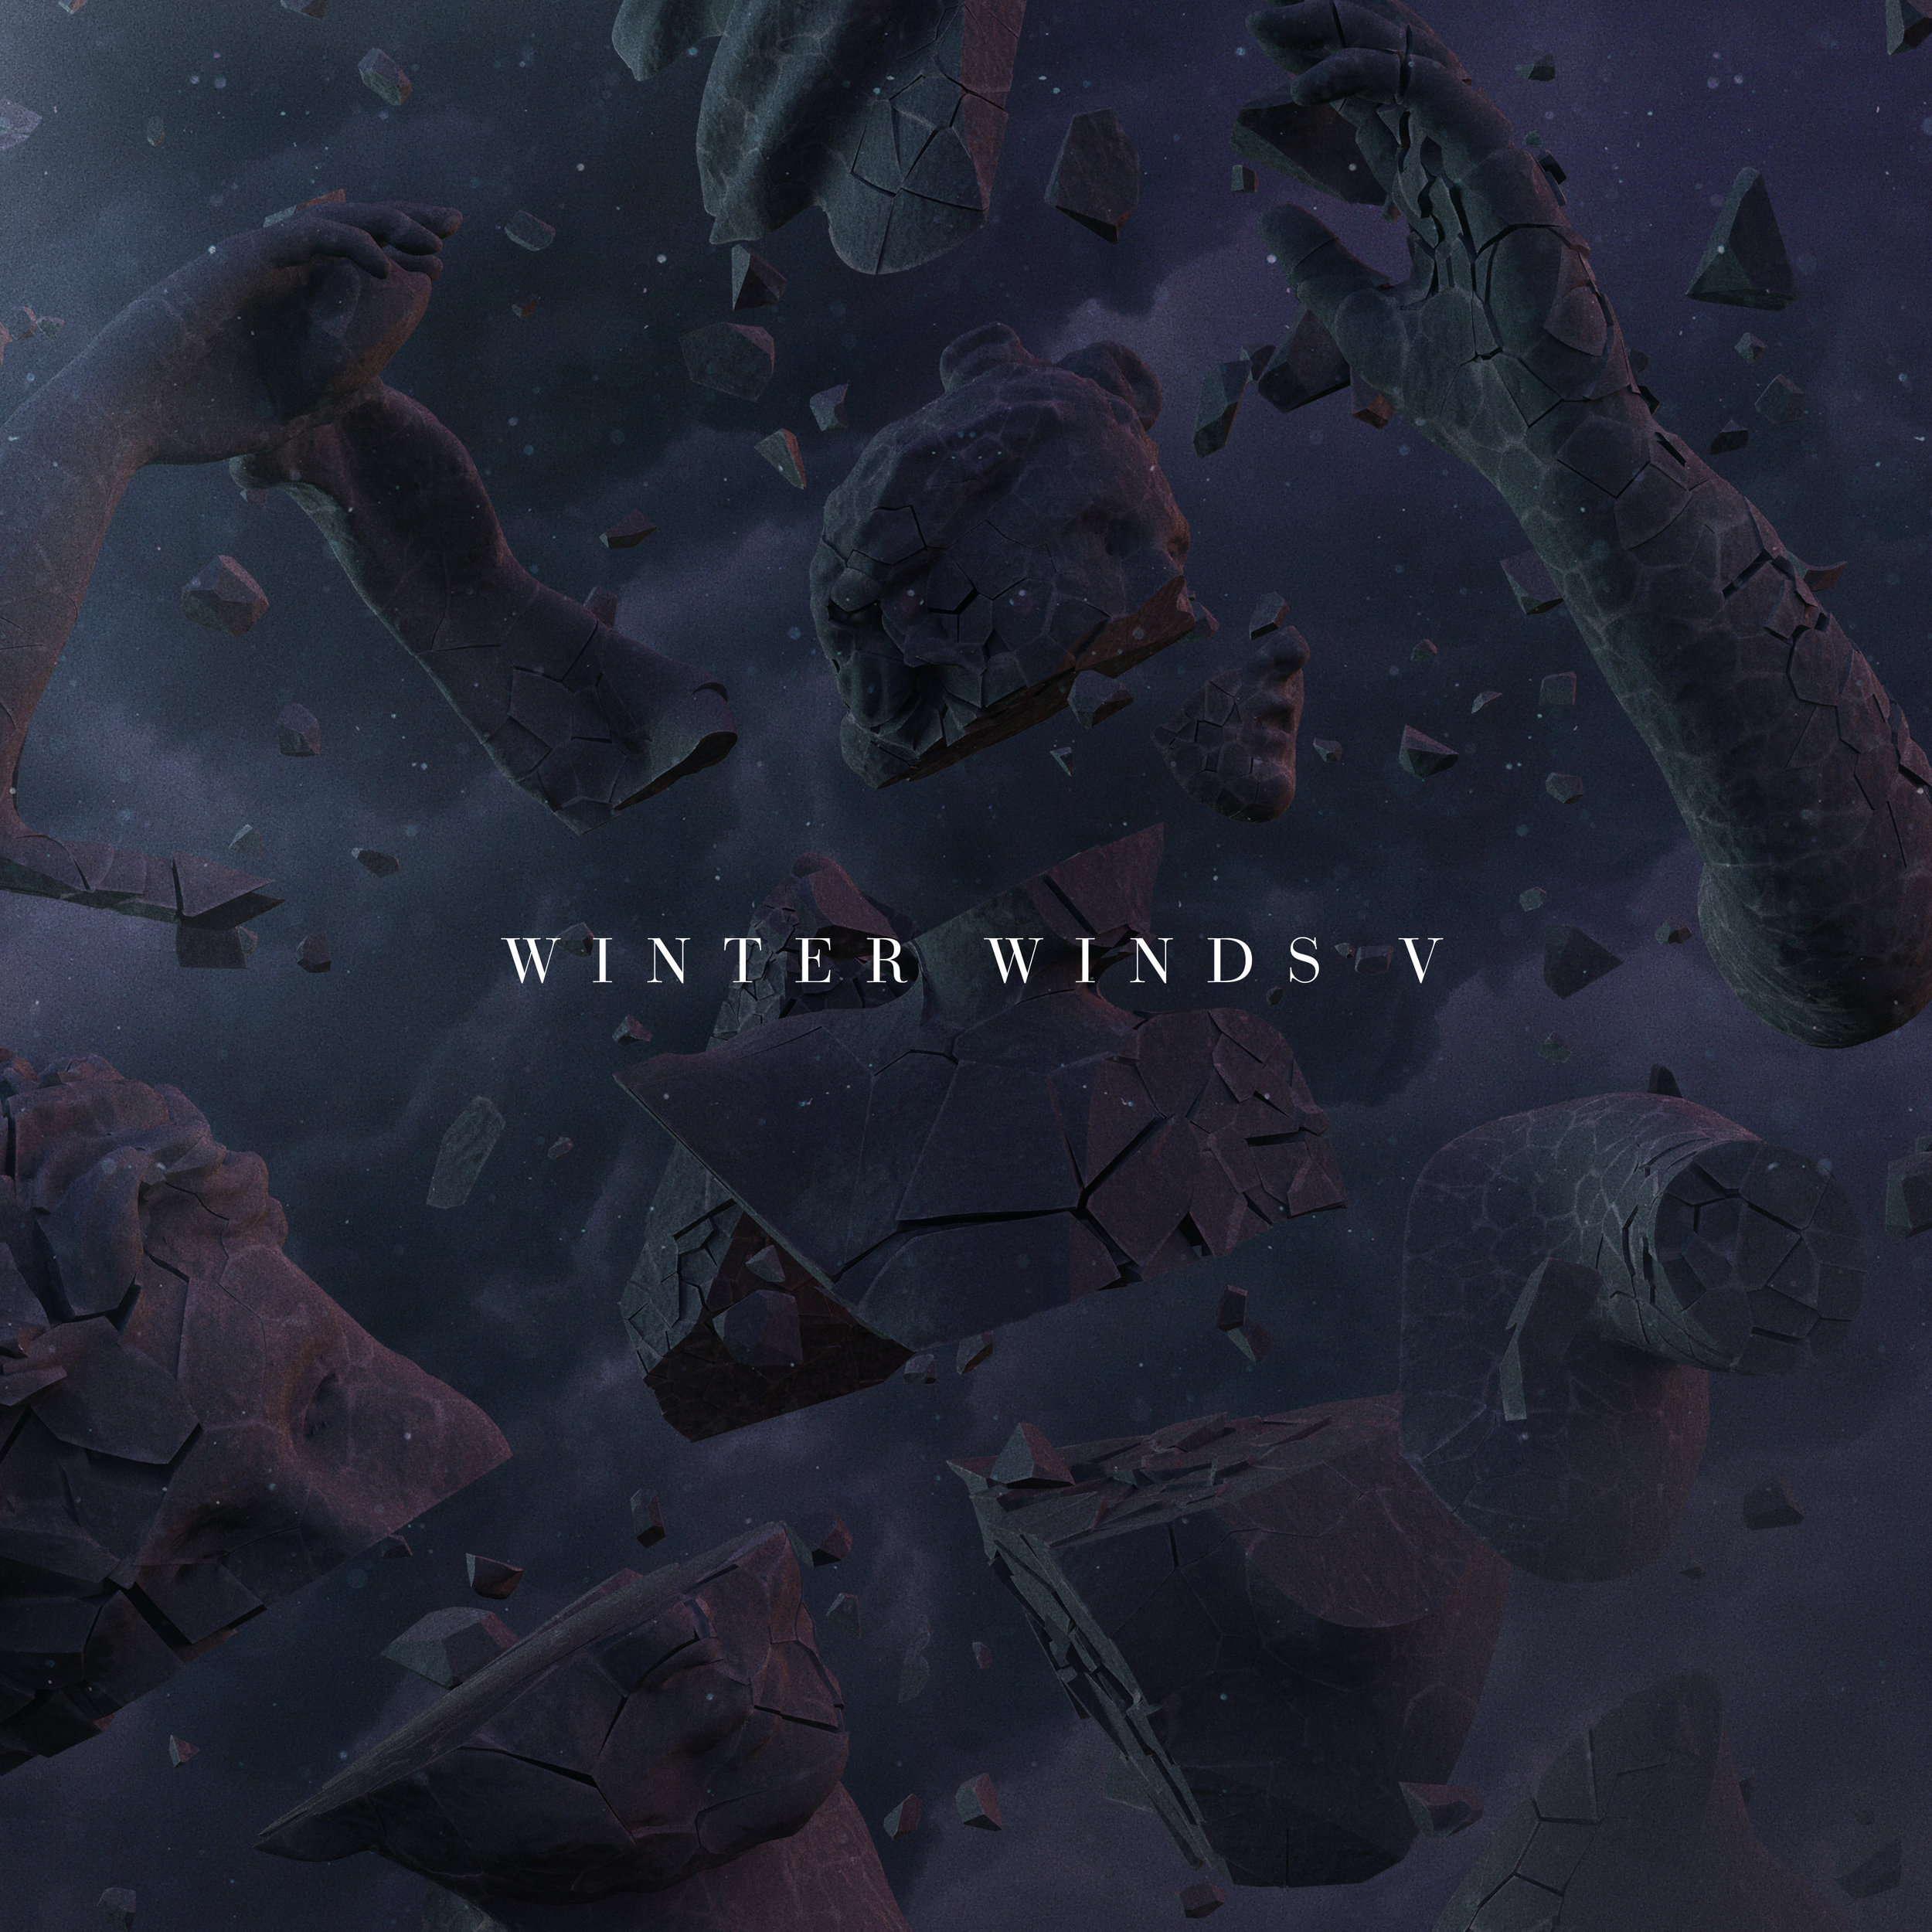 WINTER WINDS vol. 5  /  Compilation  / January 27, 2018